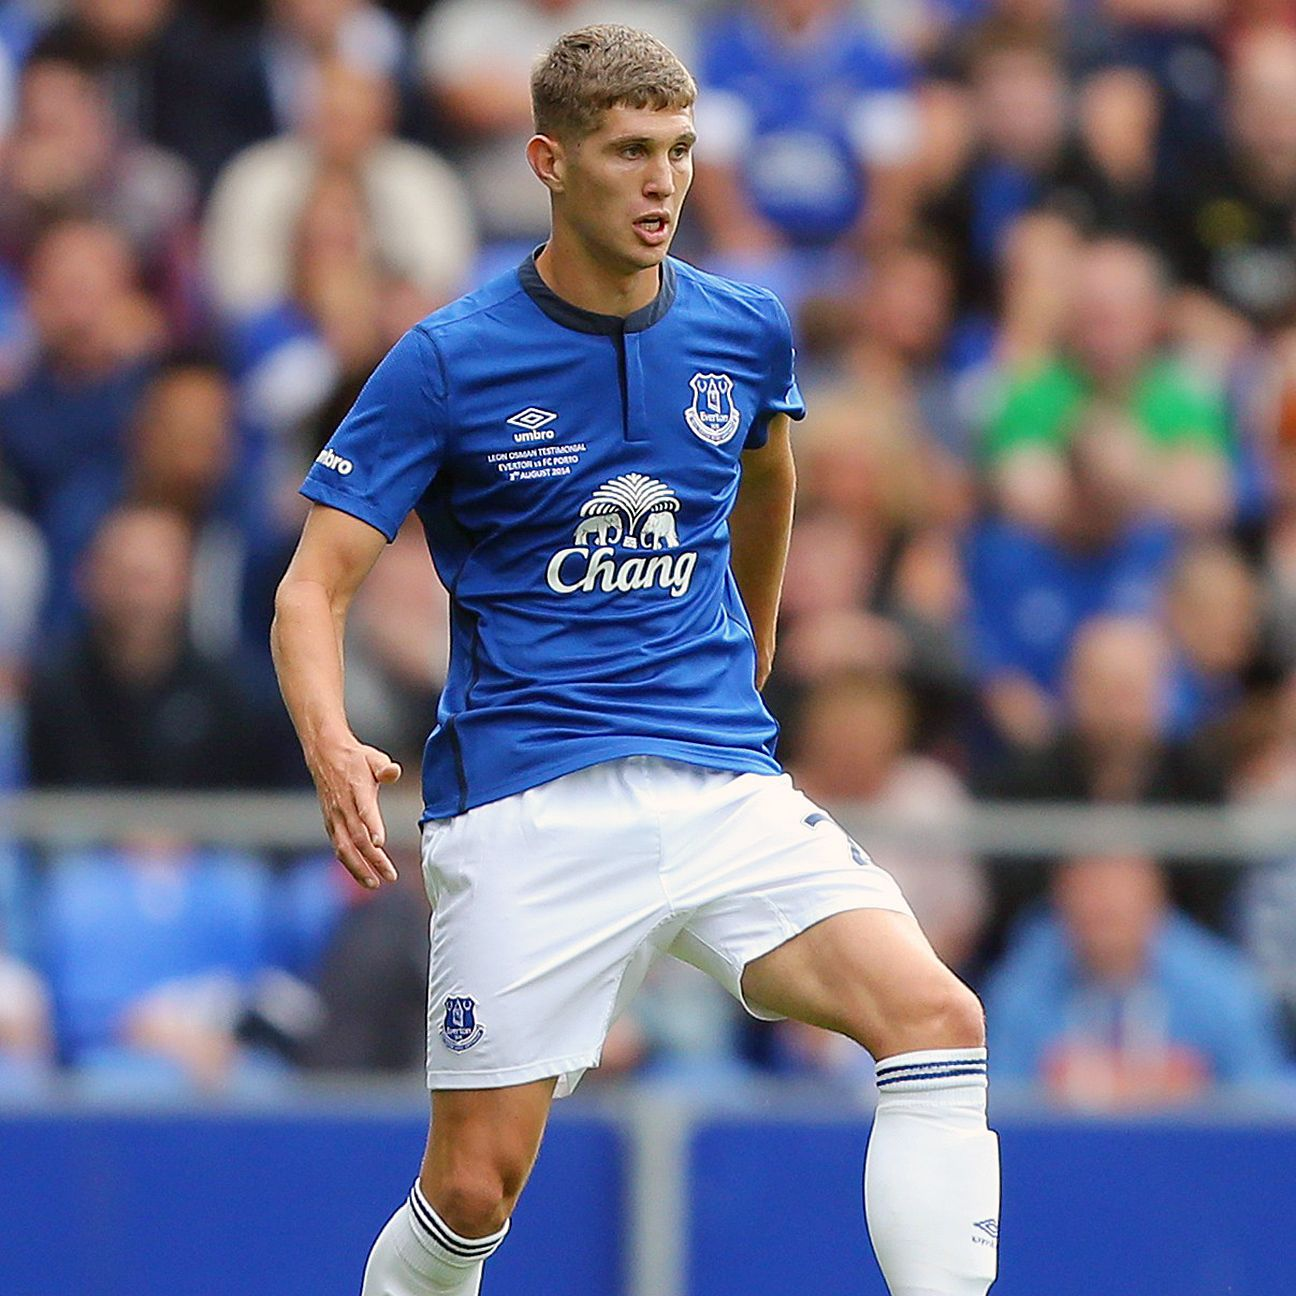 John Stones could be the man to help shore up Everton's suddenly beleaguered defence.